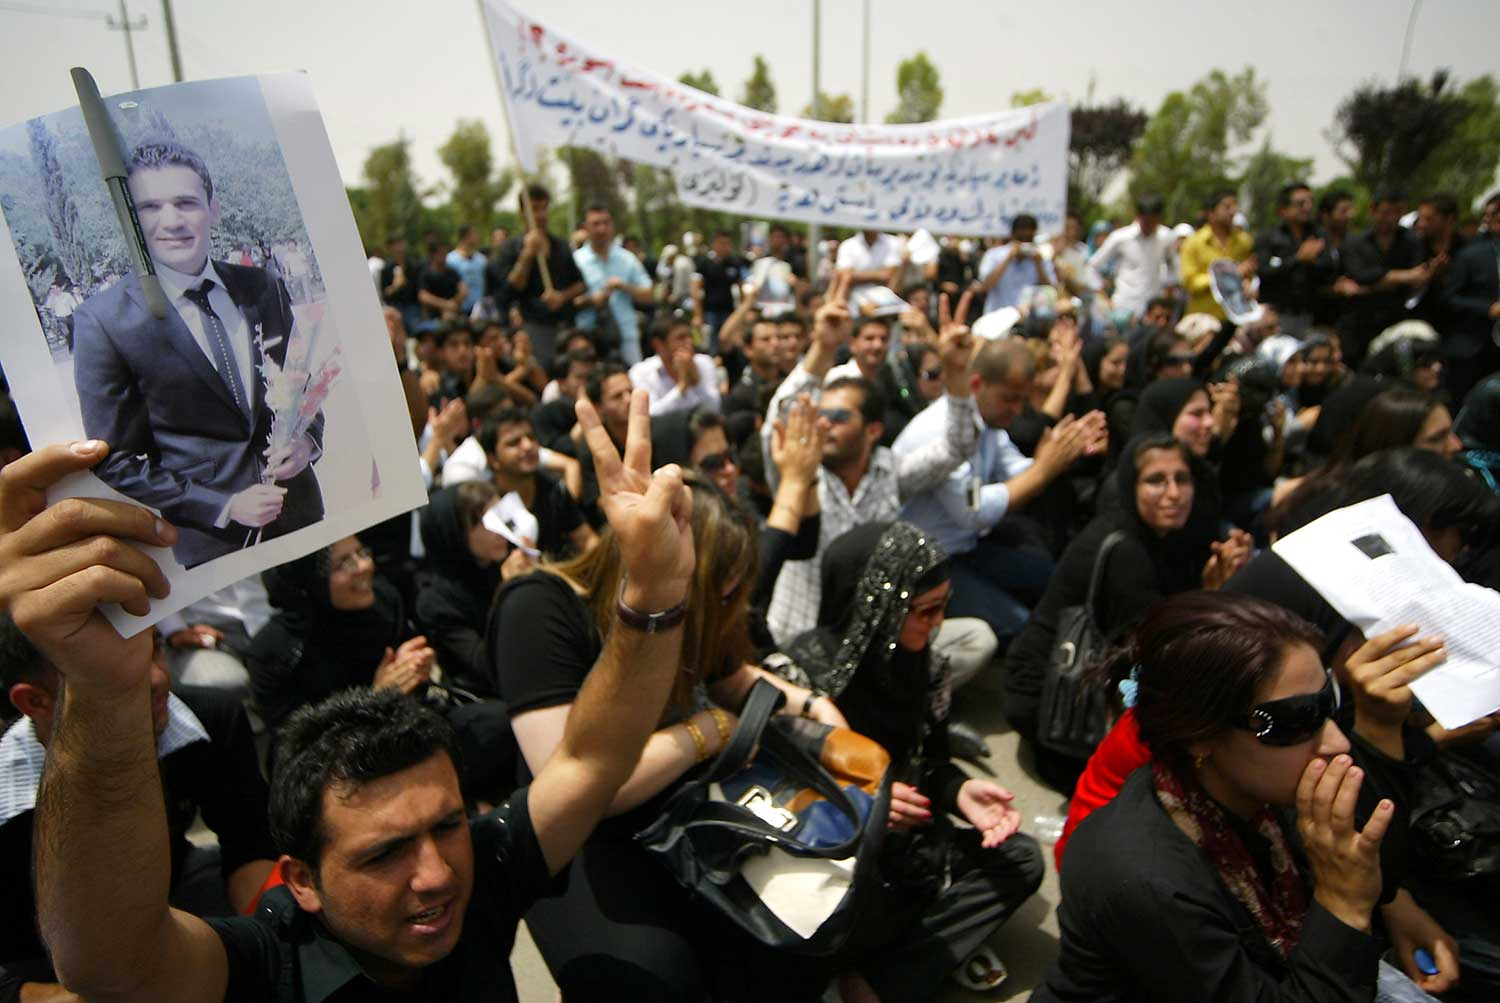 A Kurdish Muslim cleric on May 6, 2010, leads mourners in a prayer over Kurdish journalist and student Sardasht Osman who was kidnapped and killed that day in Erbil in the autonomous Kurdish region of Iraq. Seven years later, no one has been convicted of his murder. (AFP/Safin Hamed)